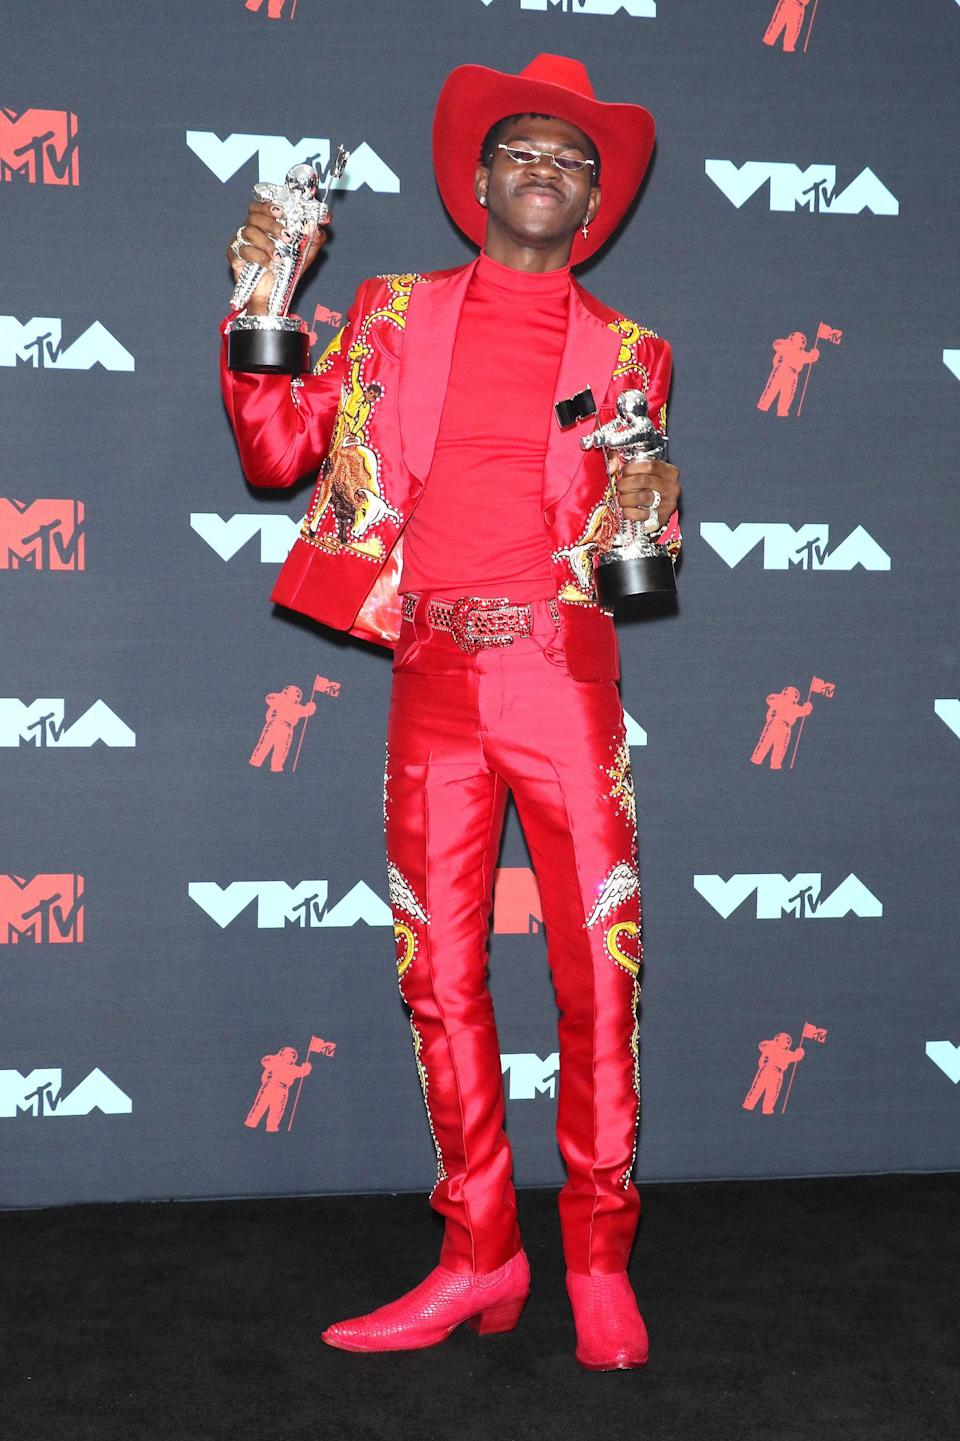 Cowboy, but make it fashion. This red-all-over ensemble was a quintessential Lil Nas X look.